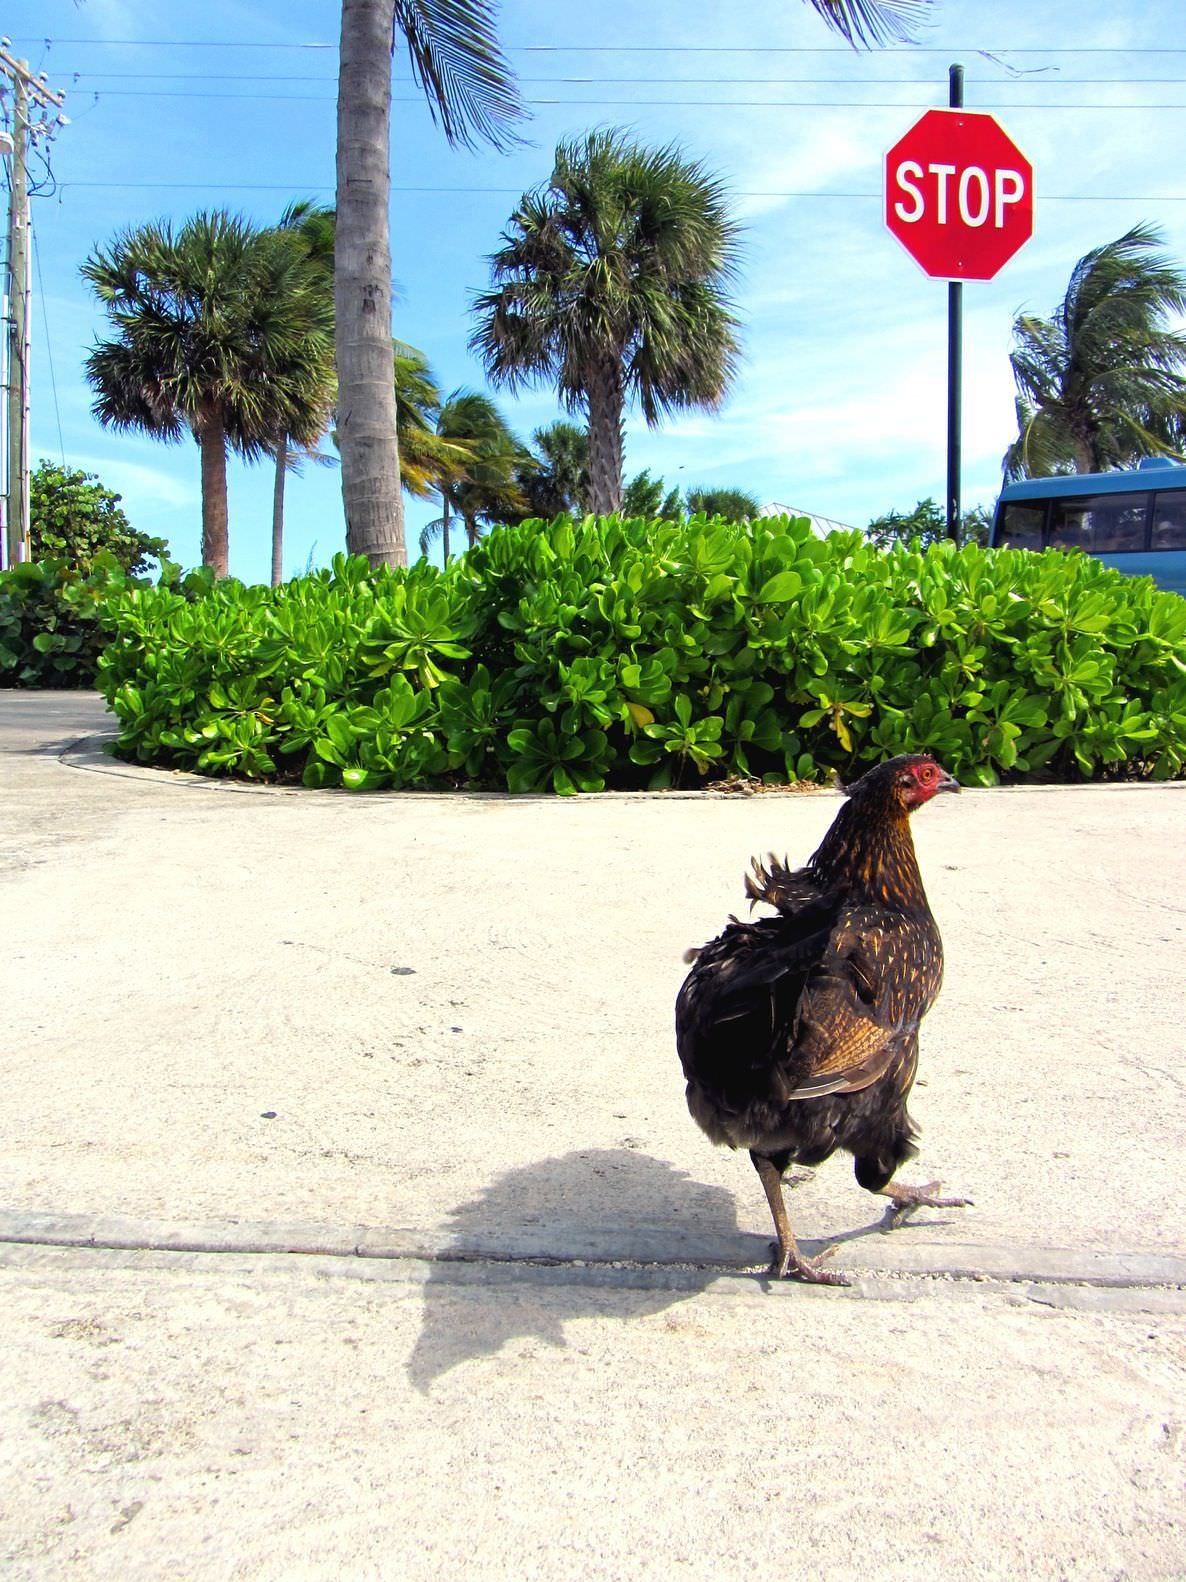 So why did the chicken cross the road? image